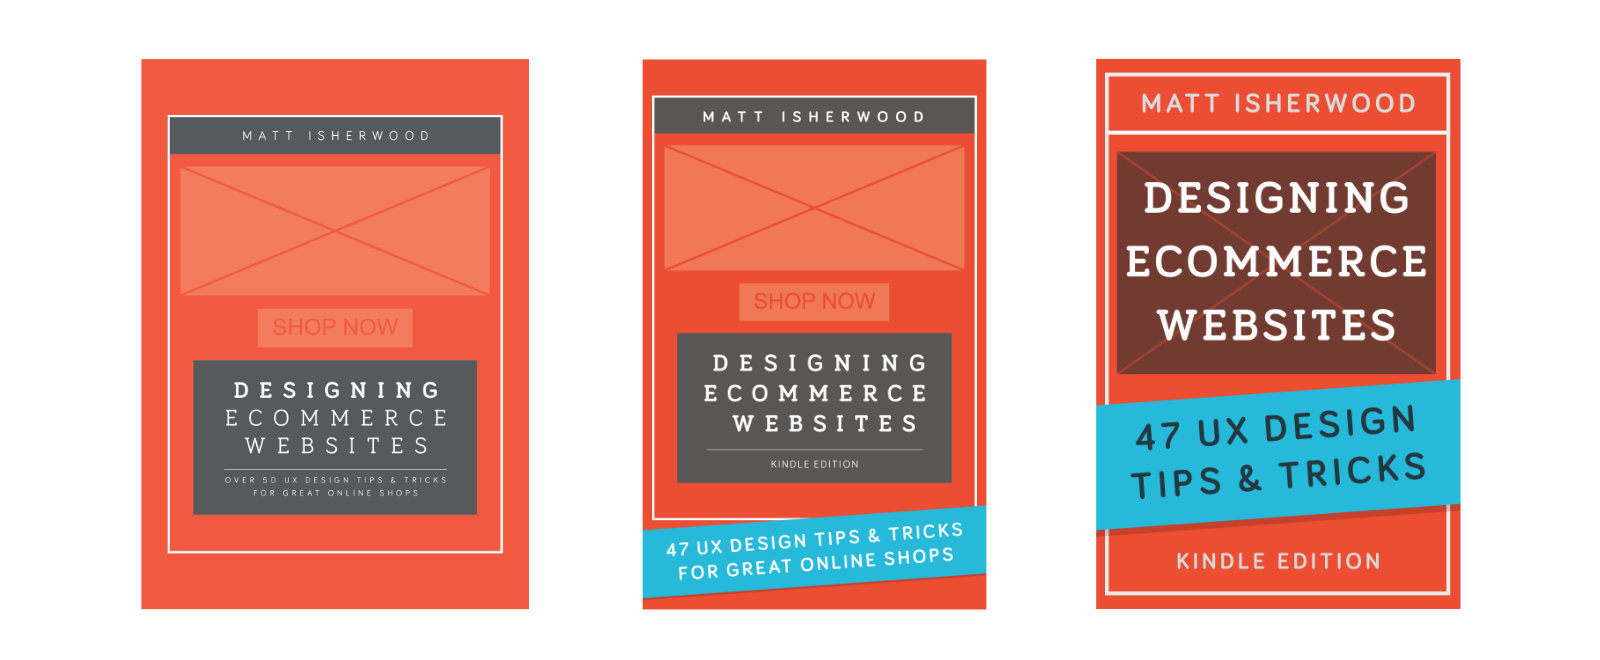 Designing Ecommerce Websites first edition covers